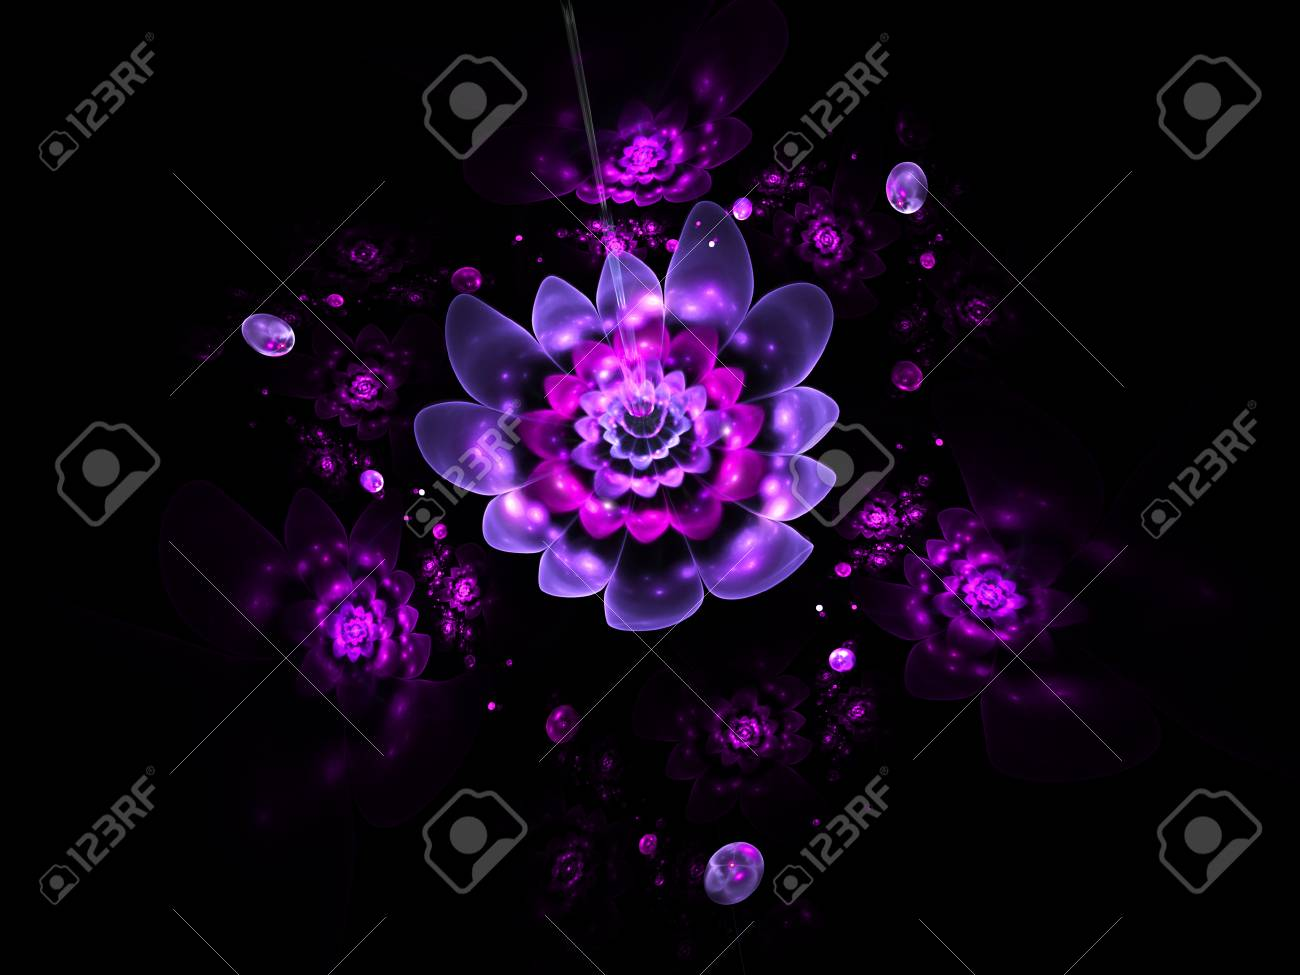 Abstract Colorful Pink And Purple Flowers On Black Background